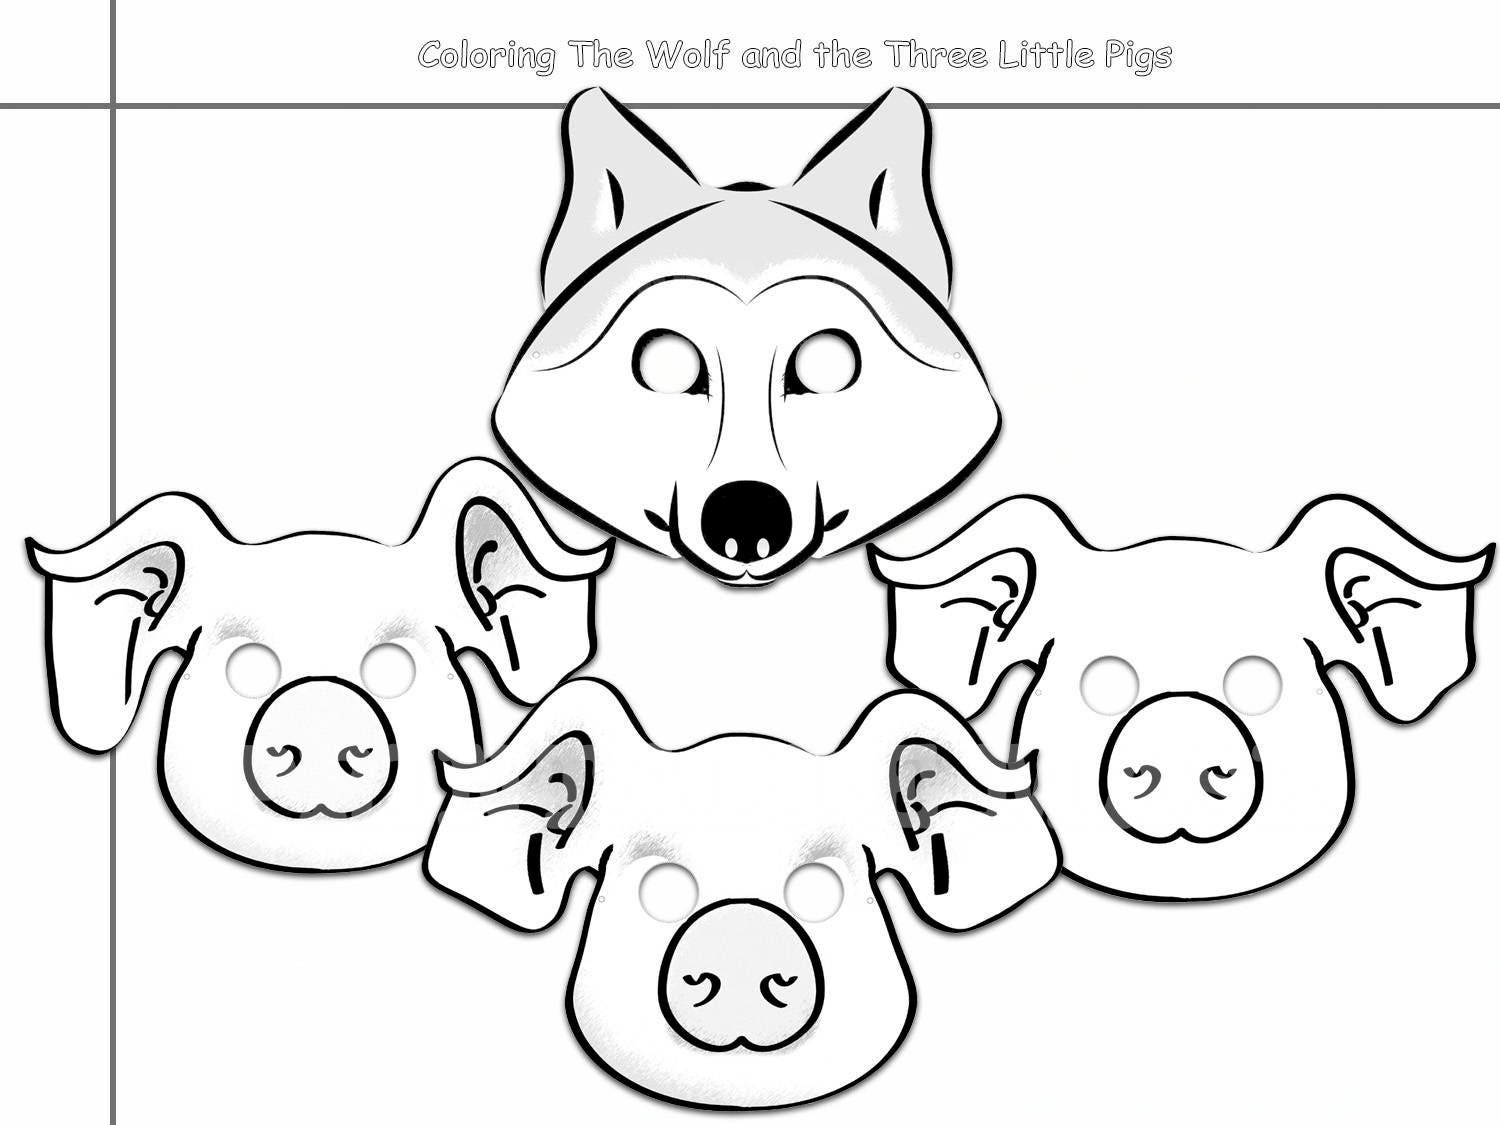 Three little pigs wolf black and white